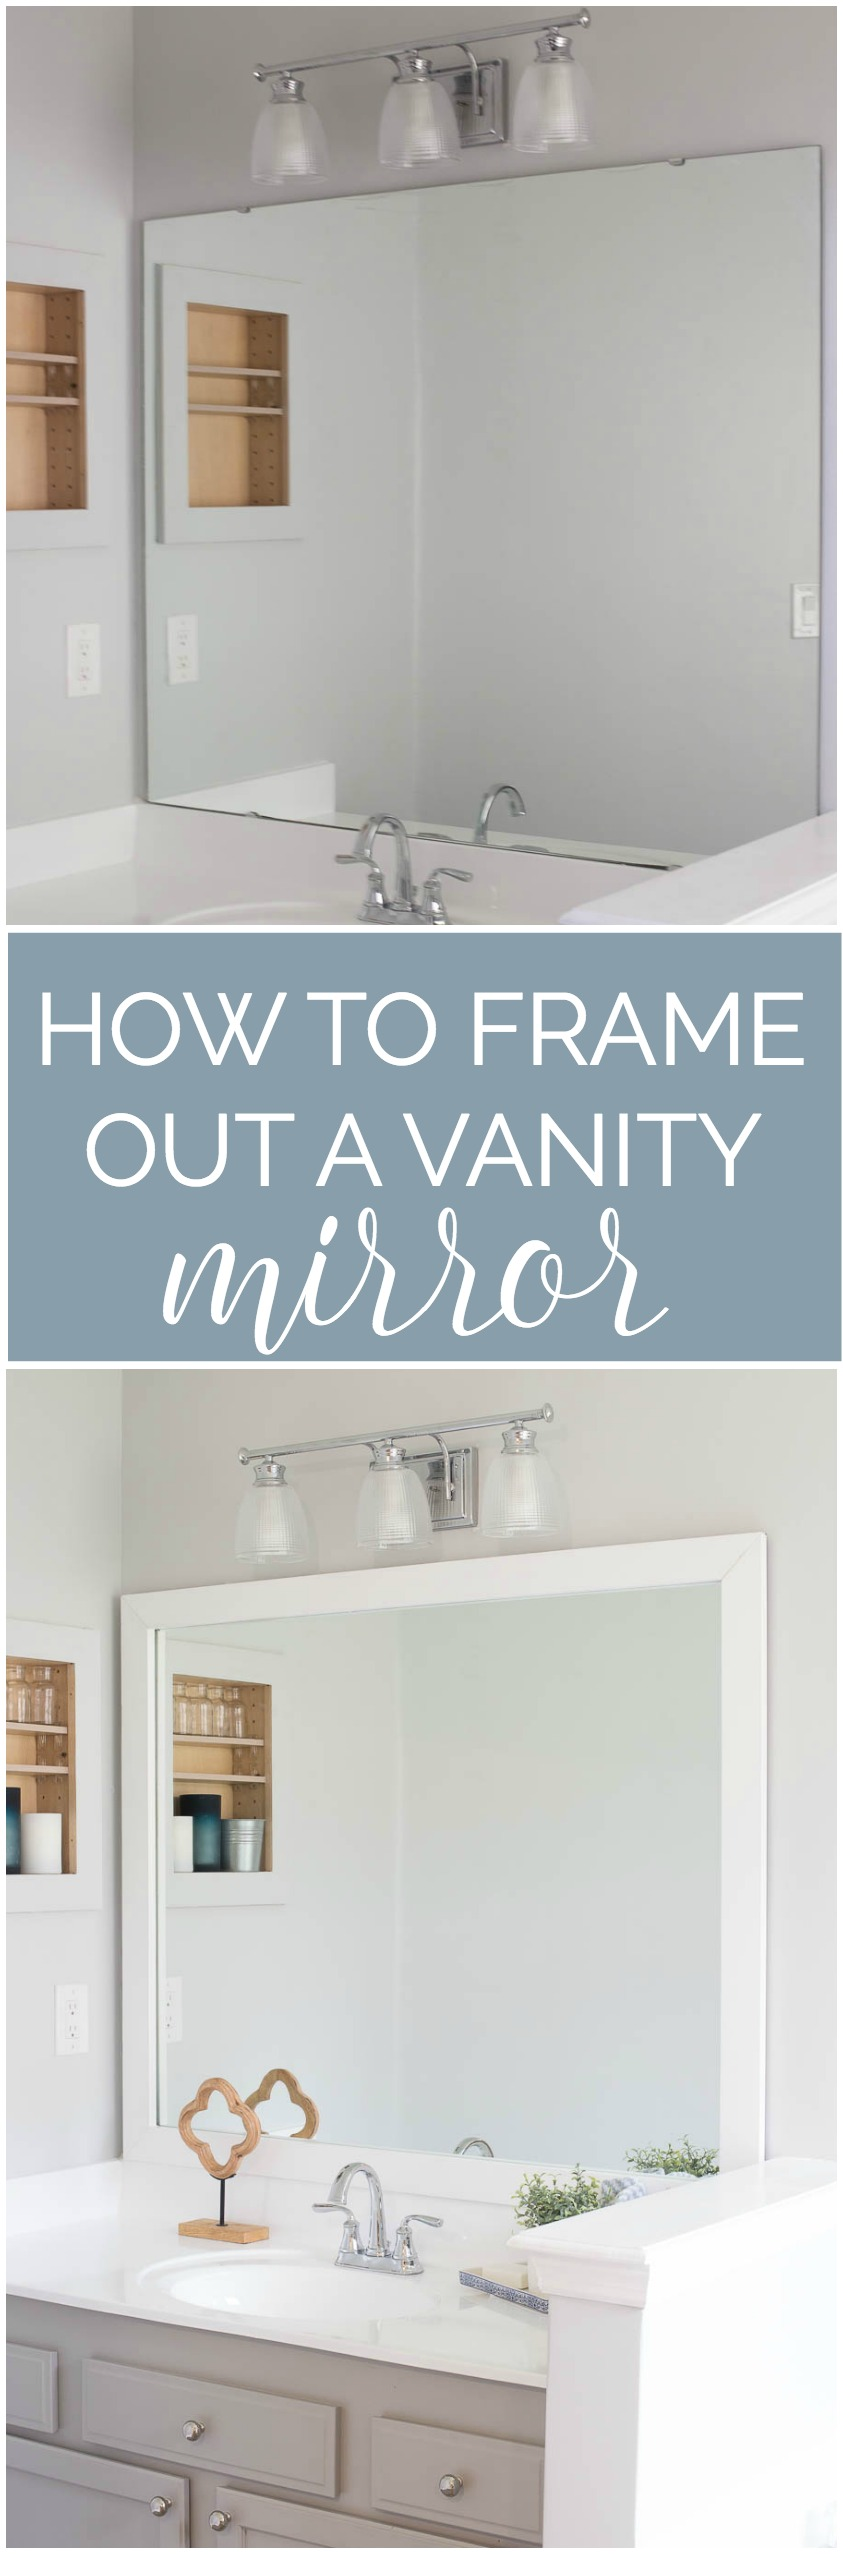 How to frame out your vanity mirror